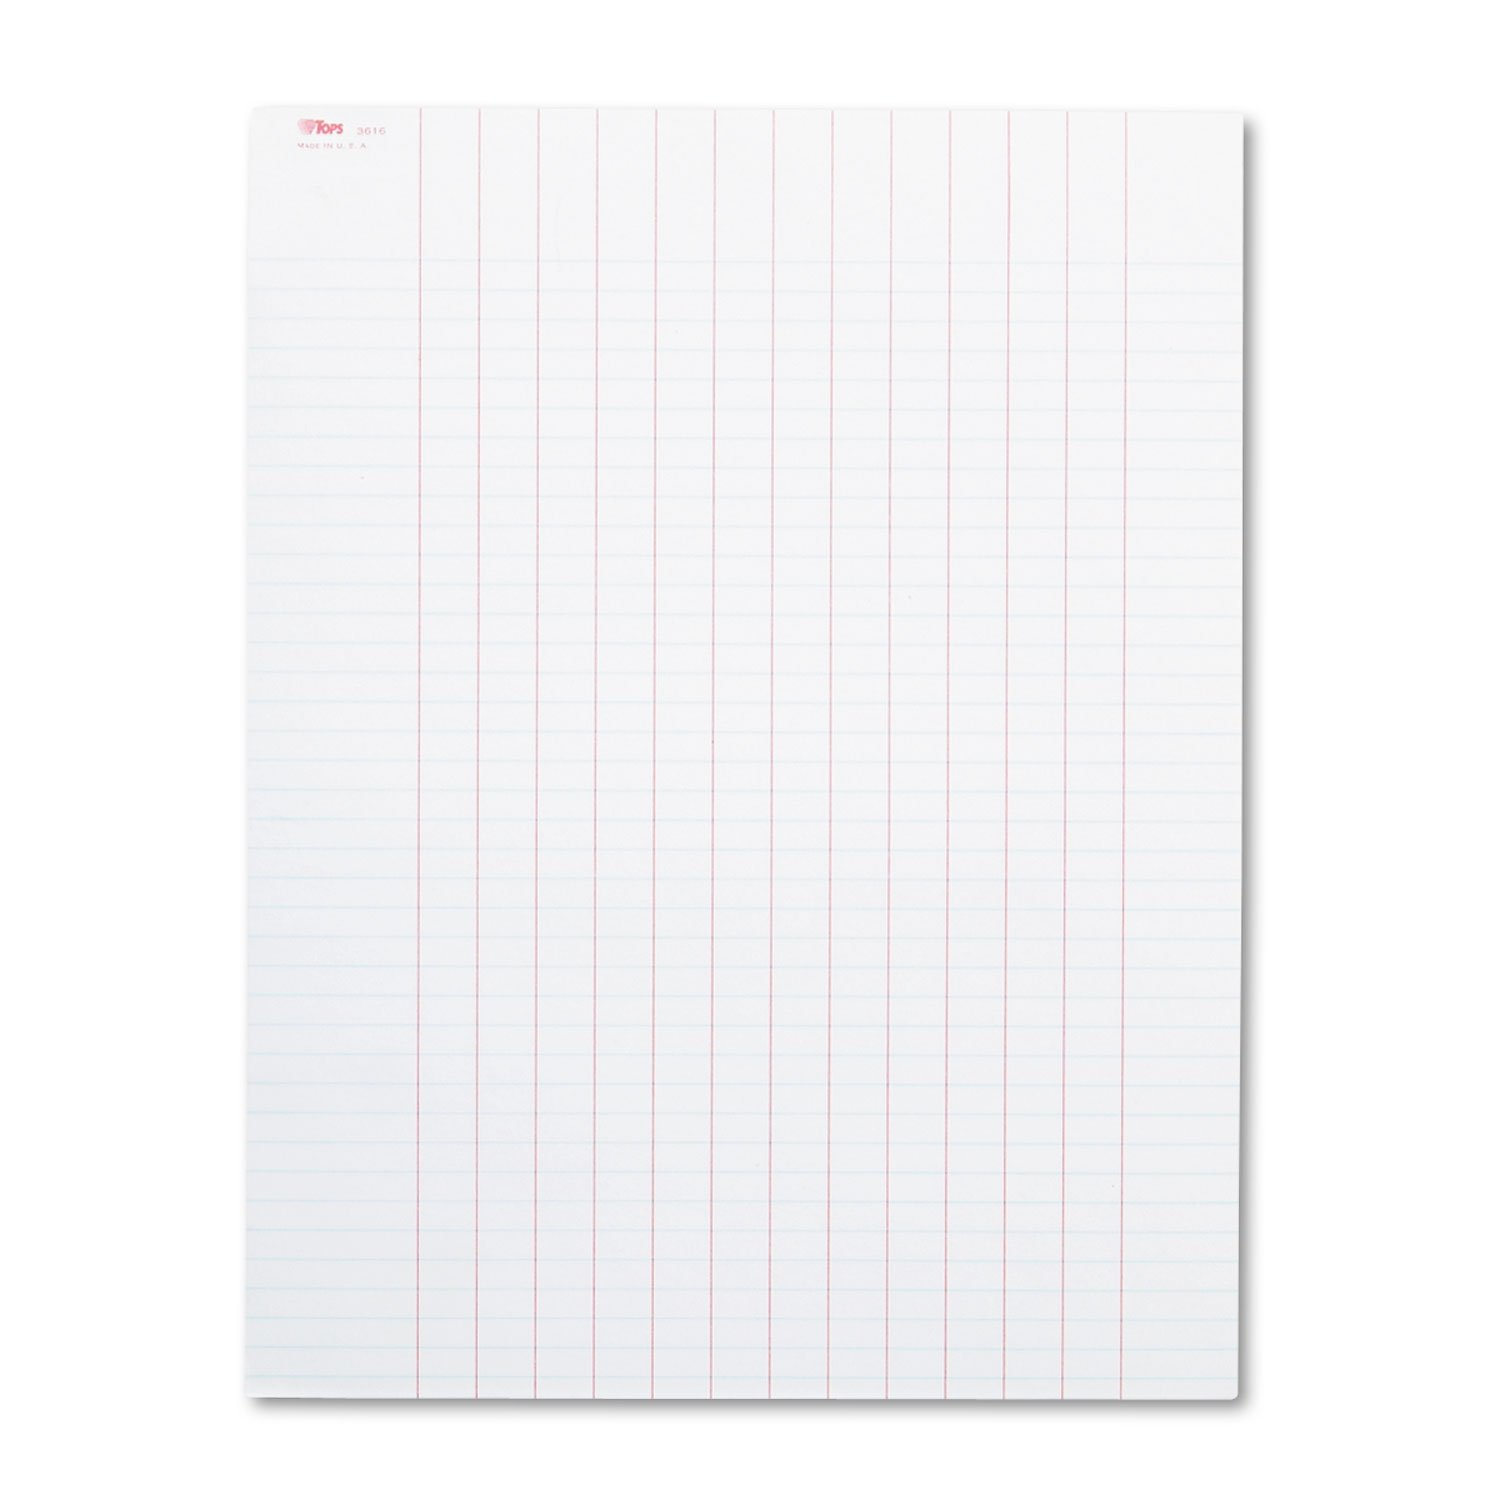 TOPS 3616 Data Pad with Plain Column Headings, 8 1/2 x 11, White, 50 Sheets